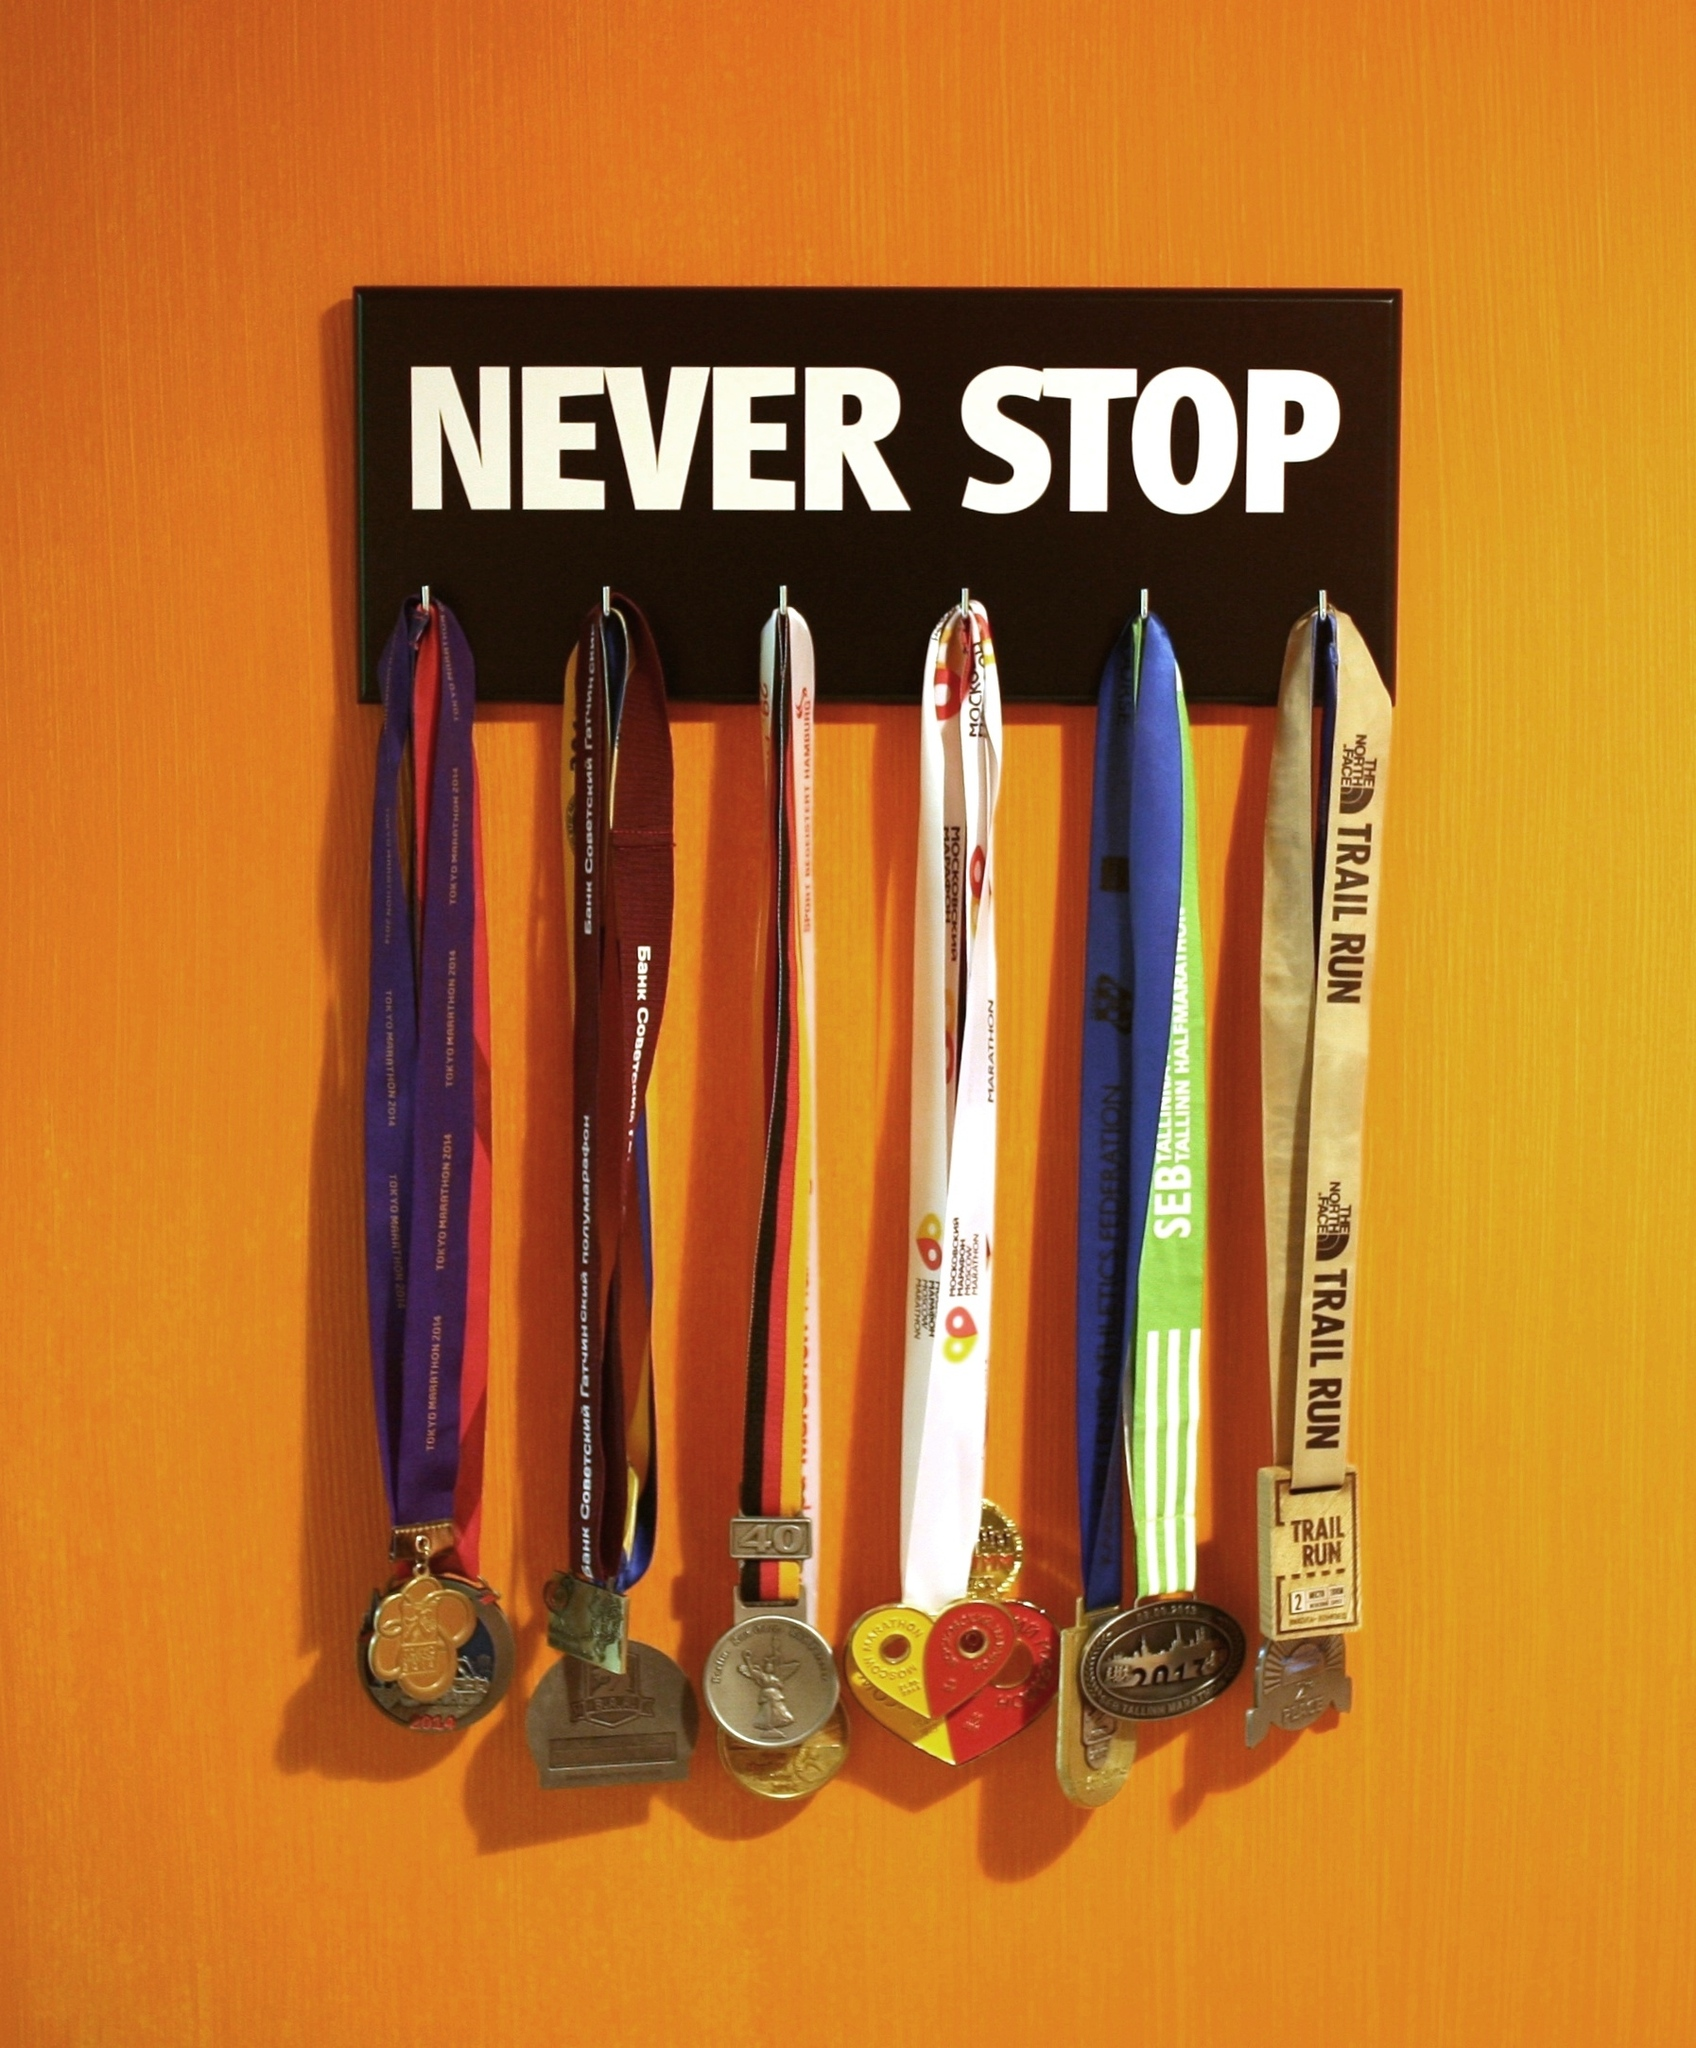 Never stop